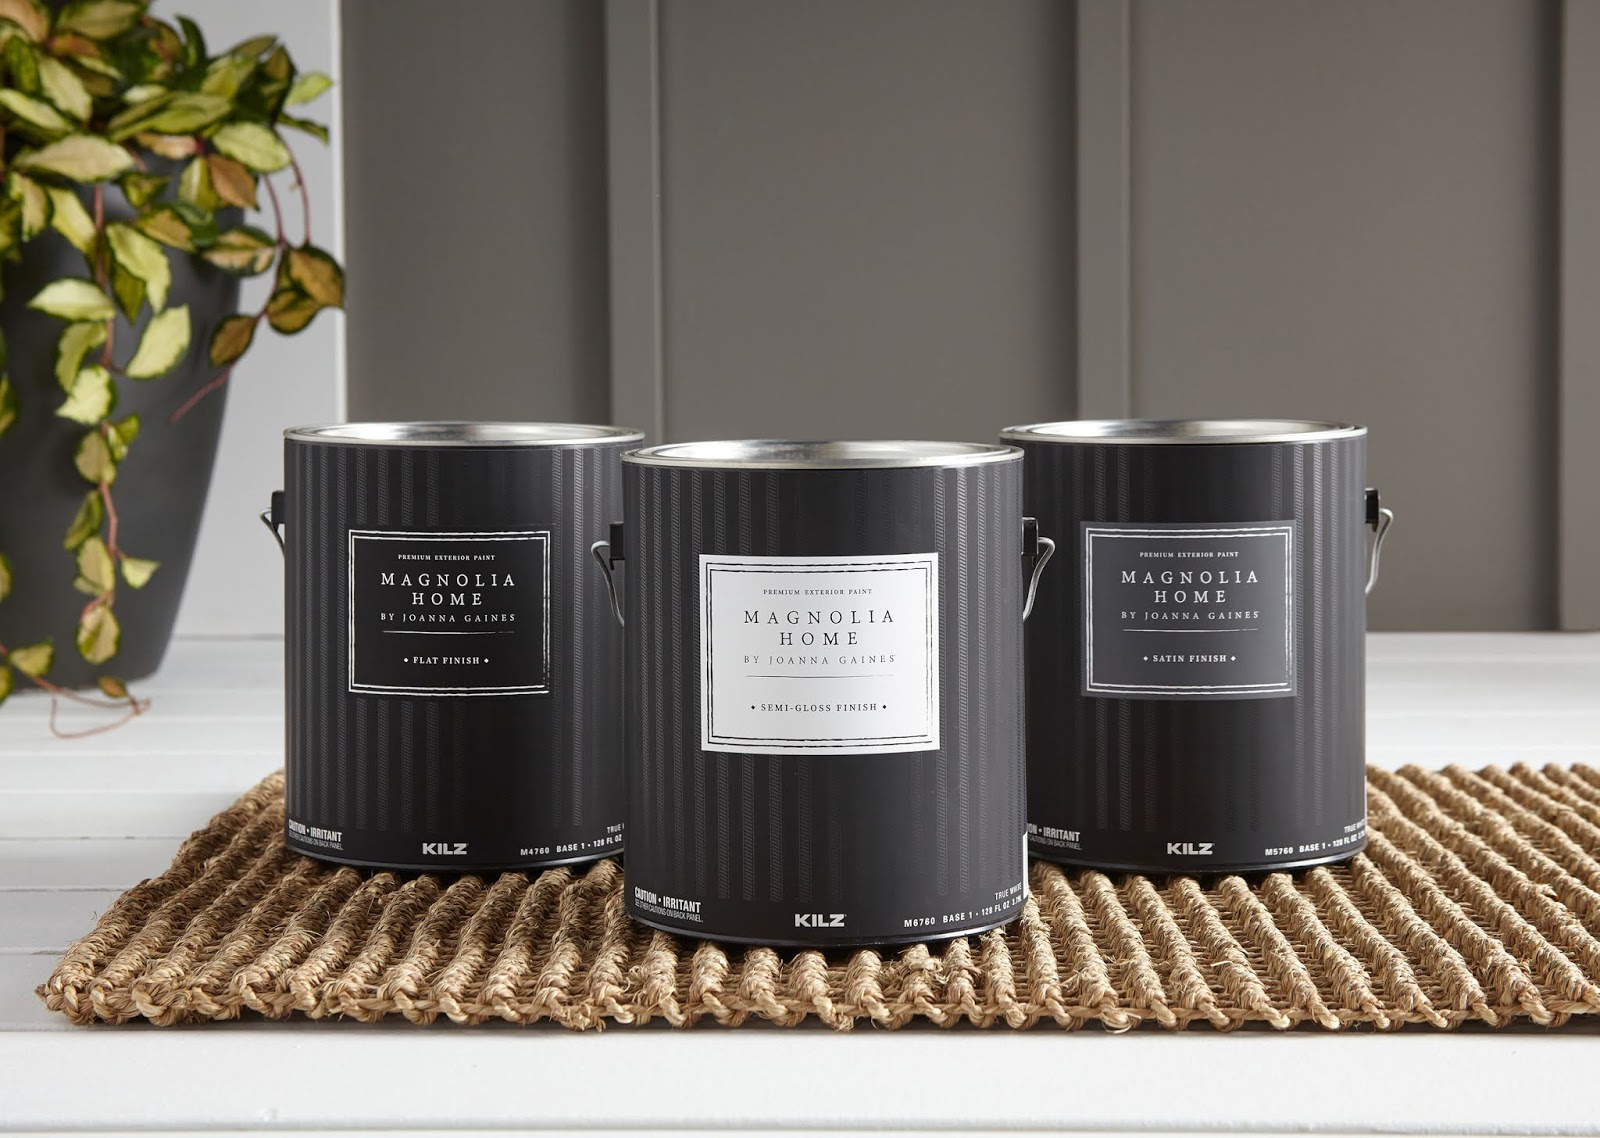 New: The Magnolia Home by Joanna Gaines Paint collection